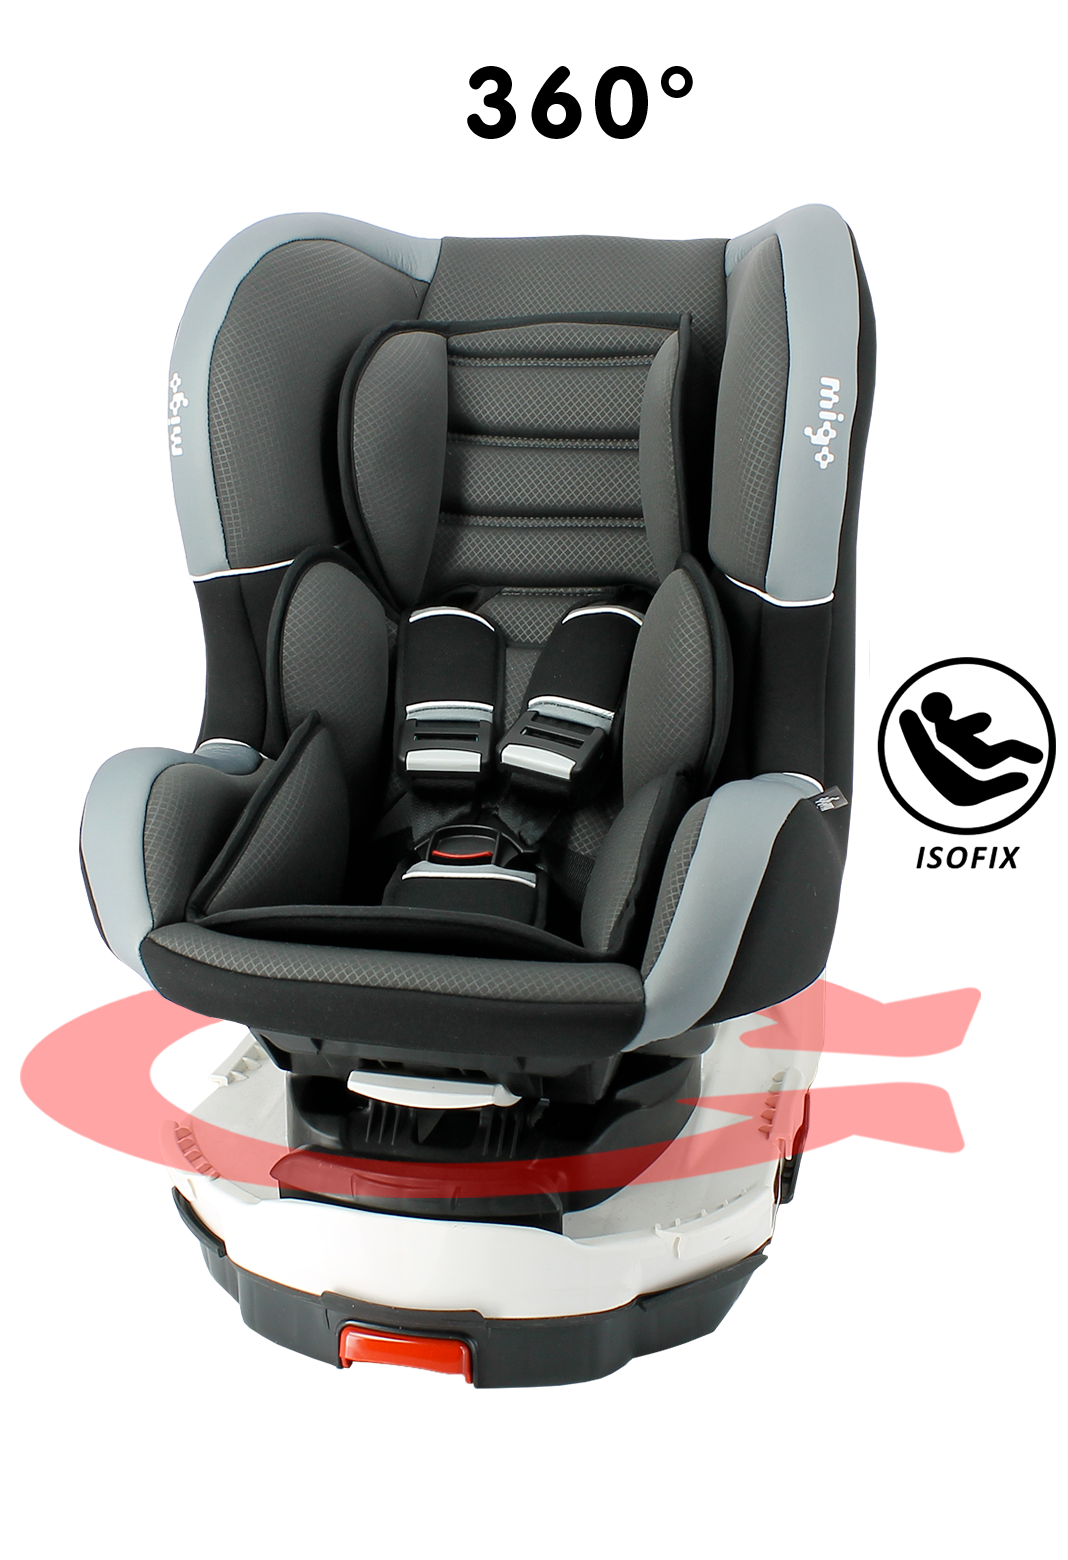 si ge auto pivotant isofix titan grp 0 1 babyneoshop by. Black Bedroom Furniture Sets. Home Design Ideas